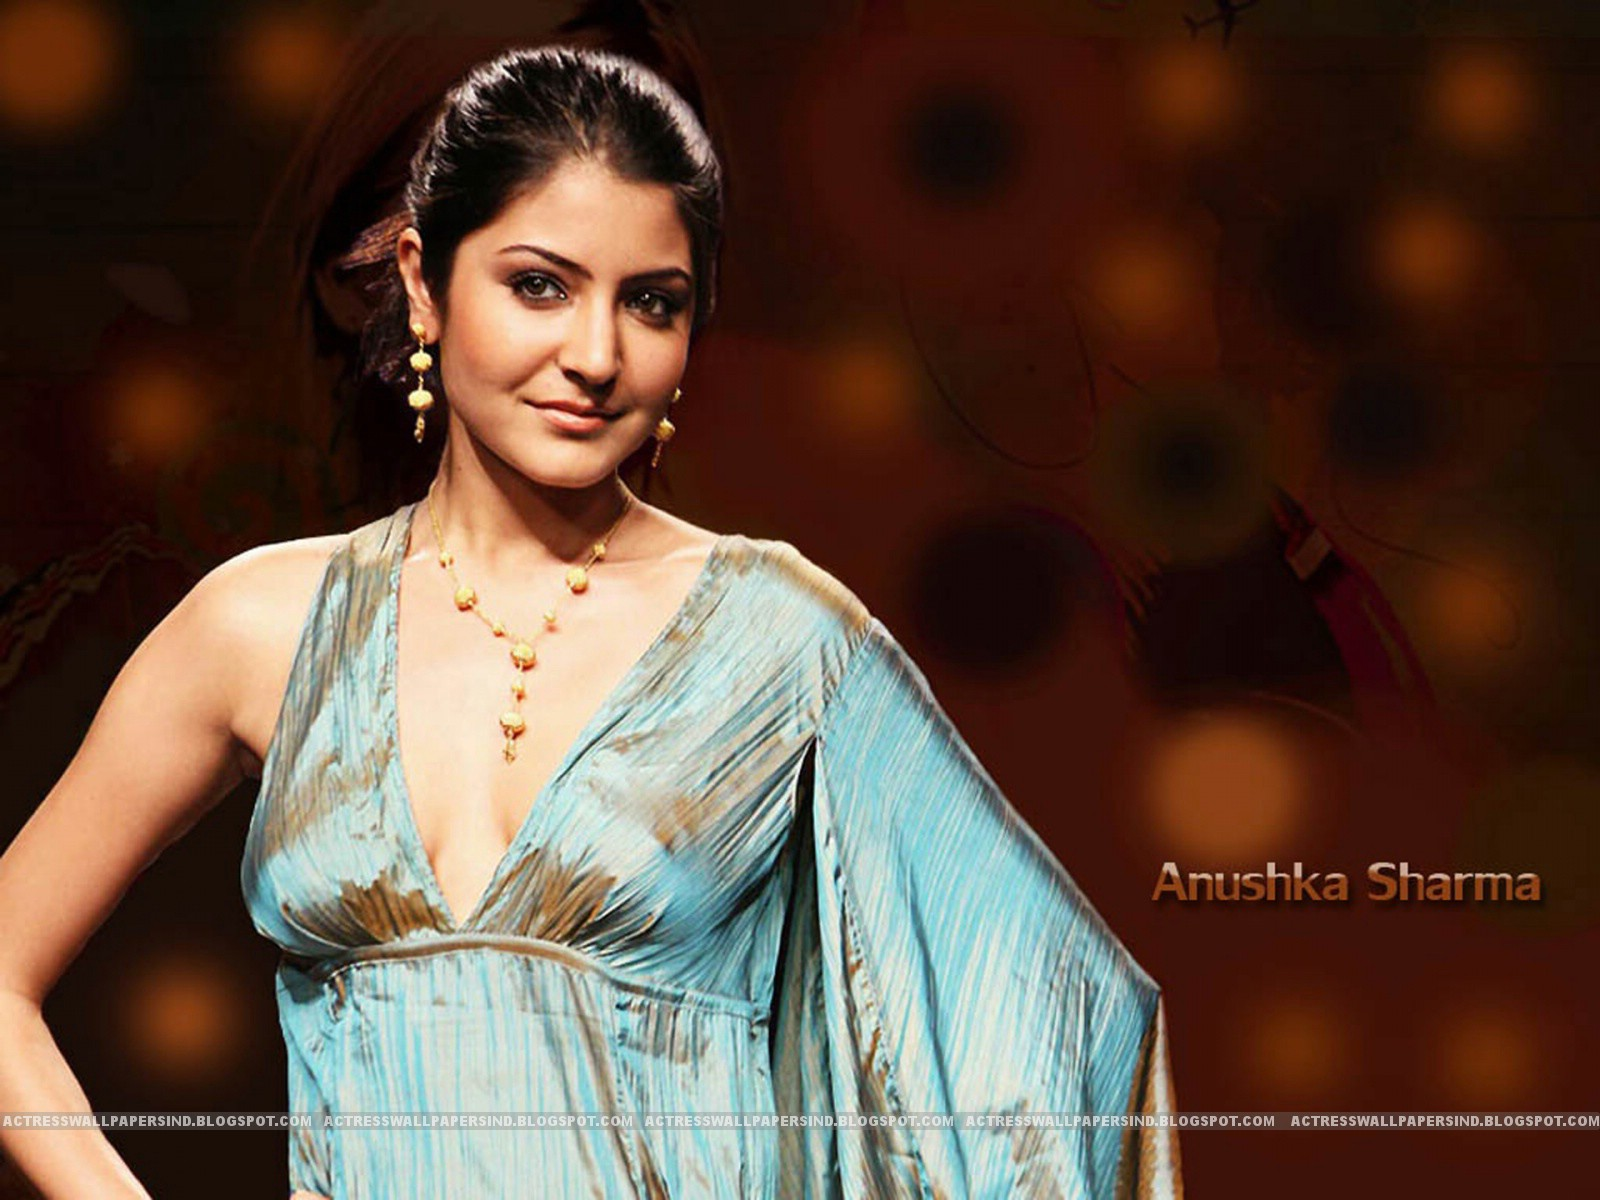 Anushka Sharma Sexy Photos Hd - A Wind-7997